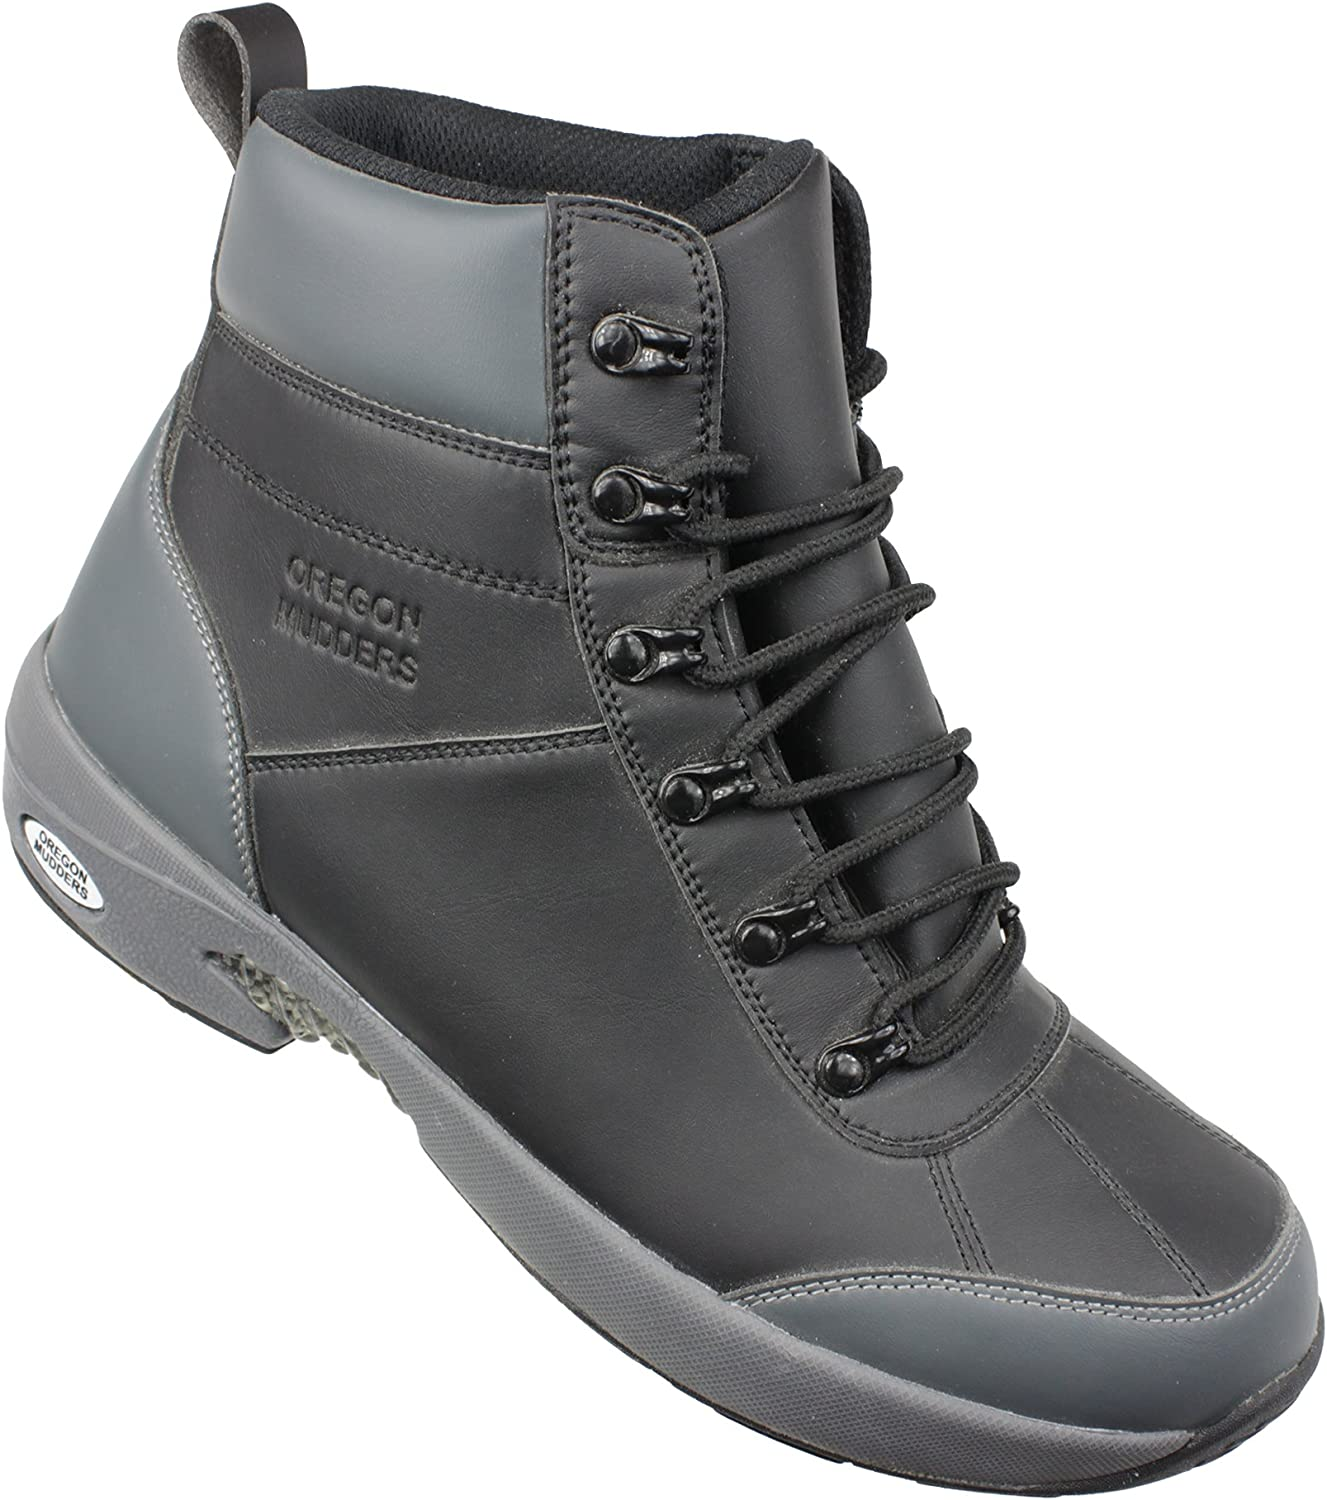 6-Inch Golf Boot with Turf Nipple Sole